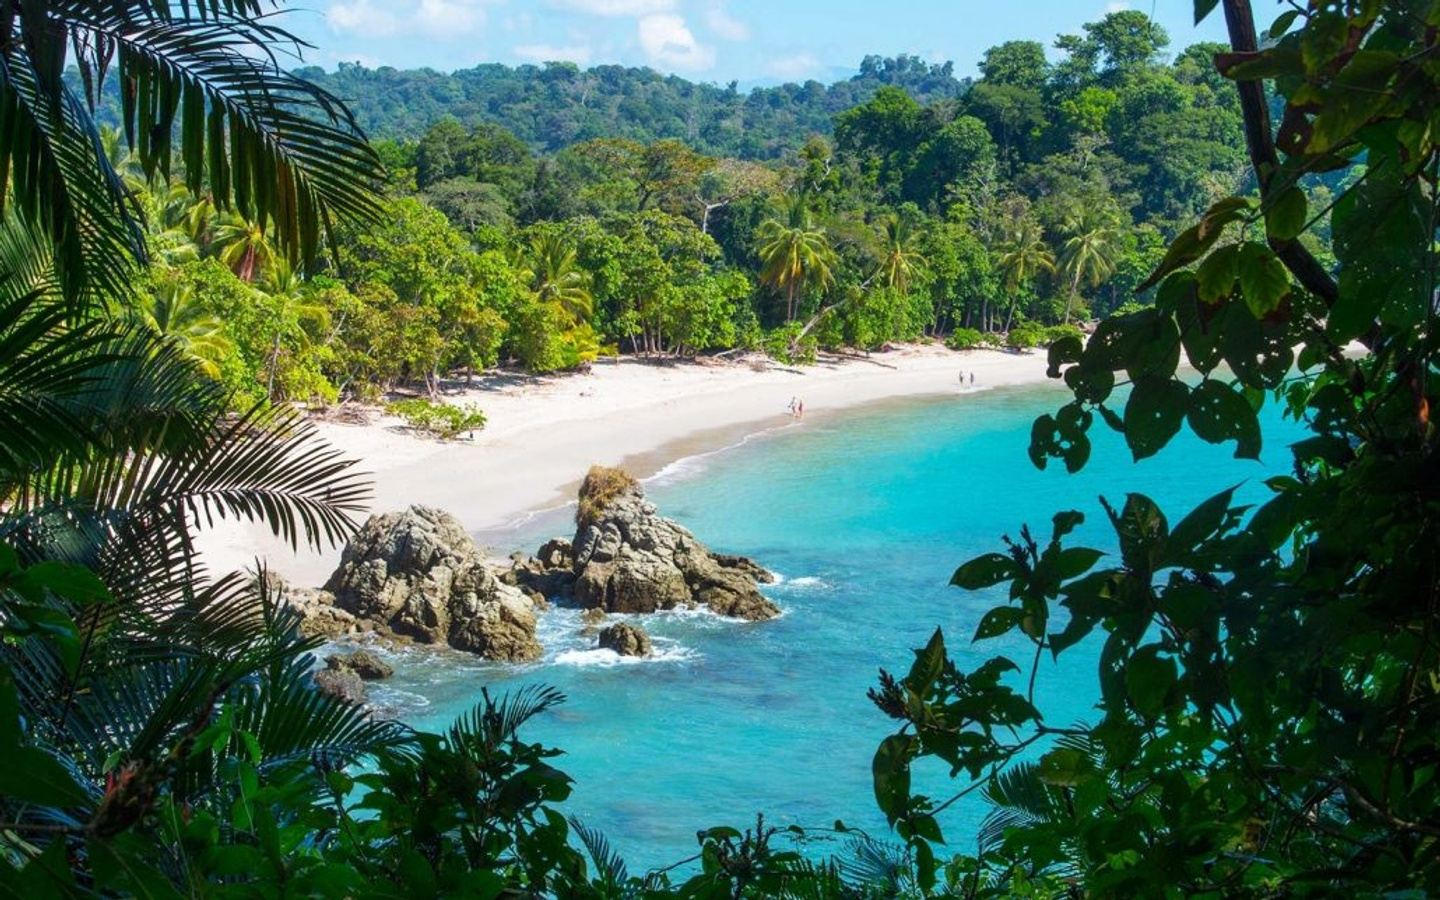 Discover Costa Rica's highlights